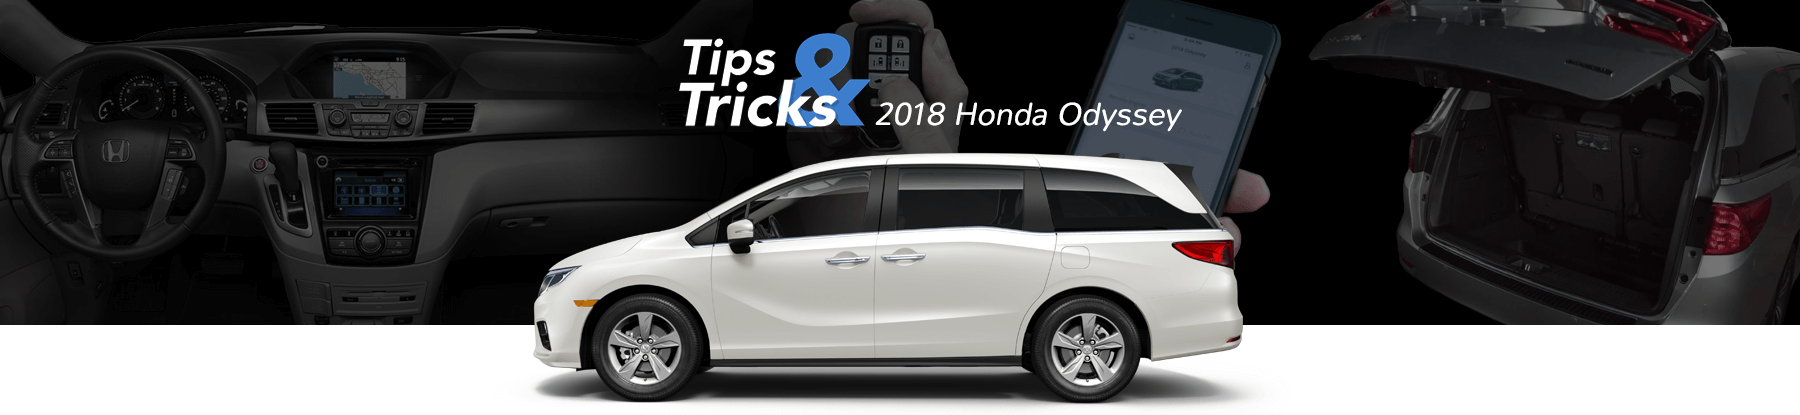 2018 Honda Odyssey Tips & Tricks Banner